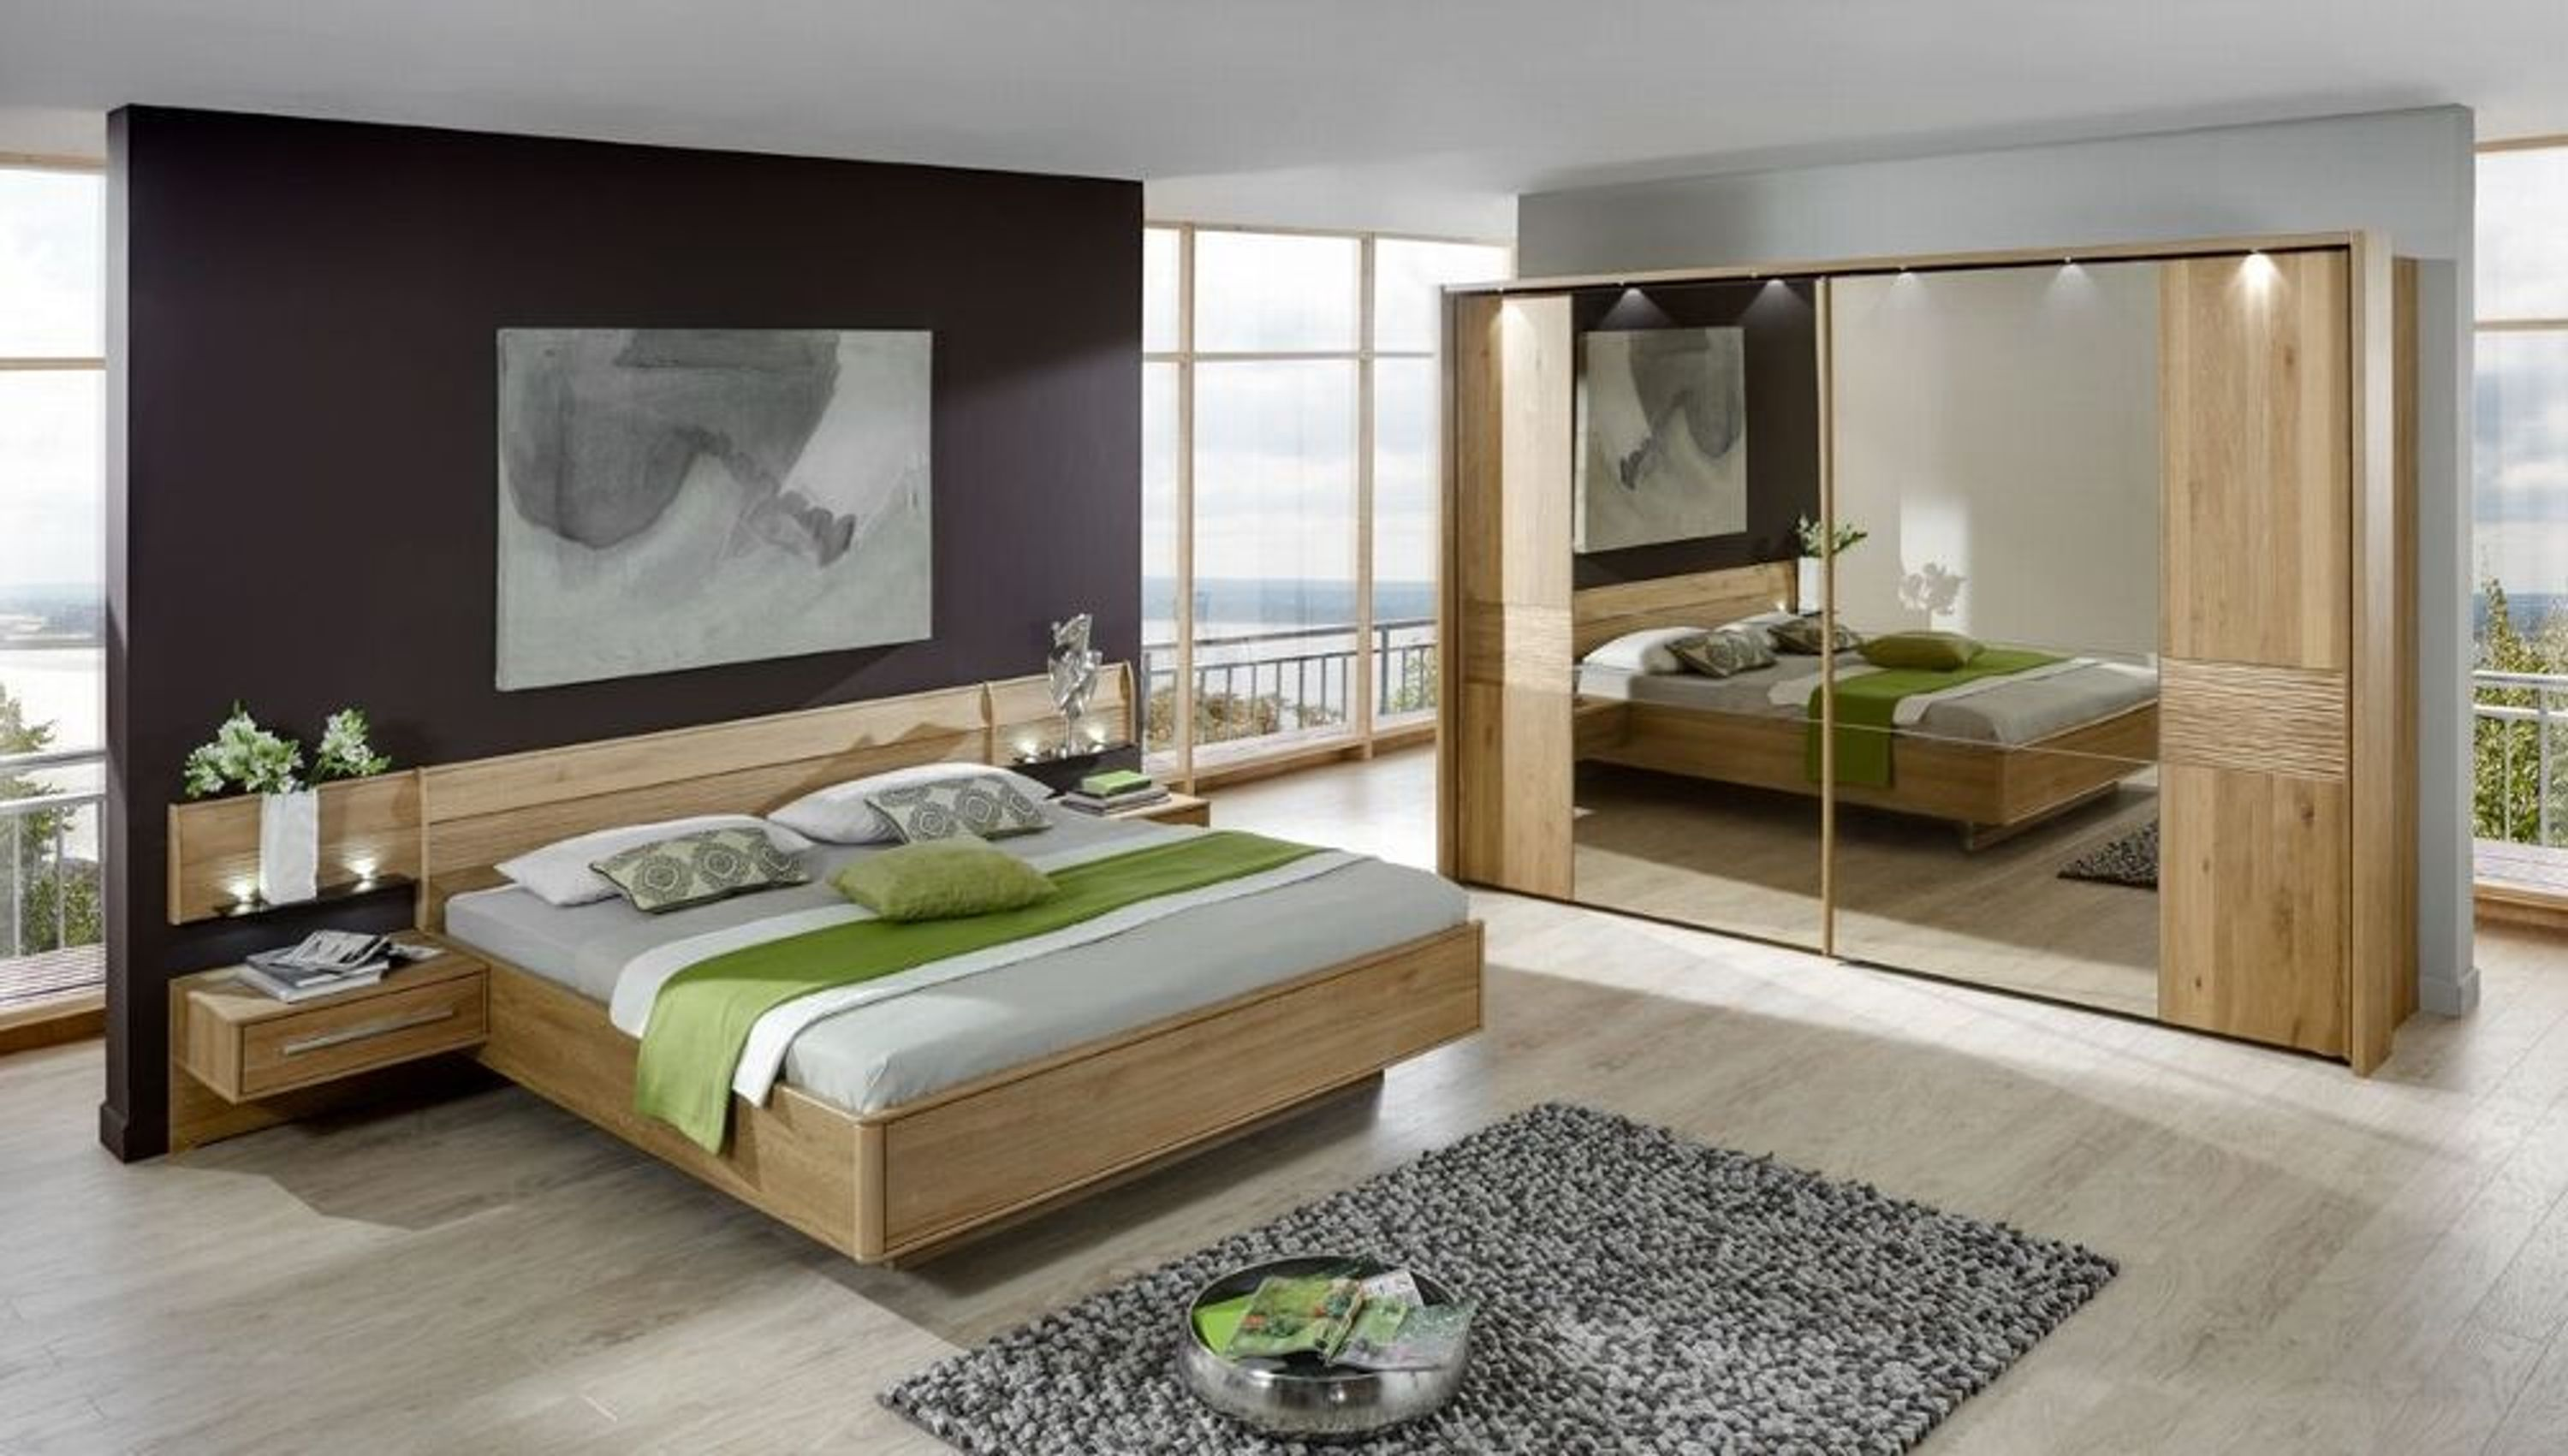 schlafzimmer komplett samoa schlafzimmerm bel eiche teilmassiv 9424 kaufen bei. Black Bedroom Furniture Sets. Home Design Ideas